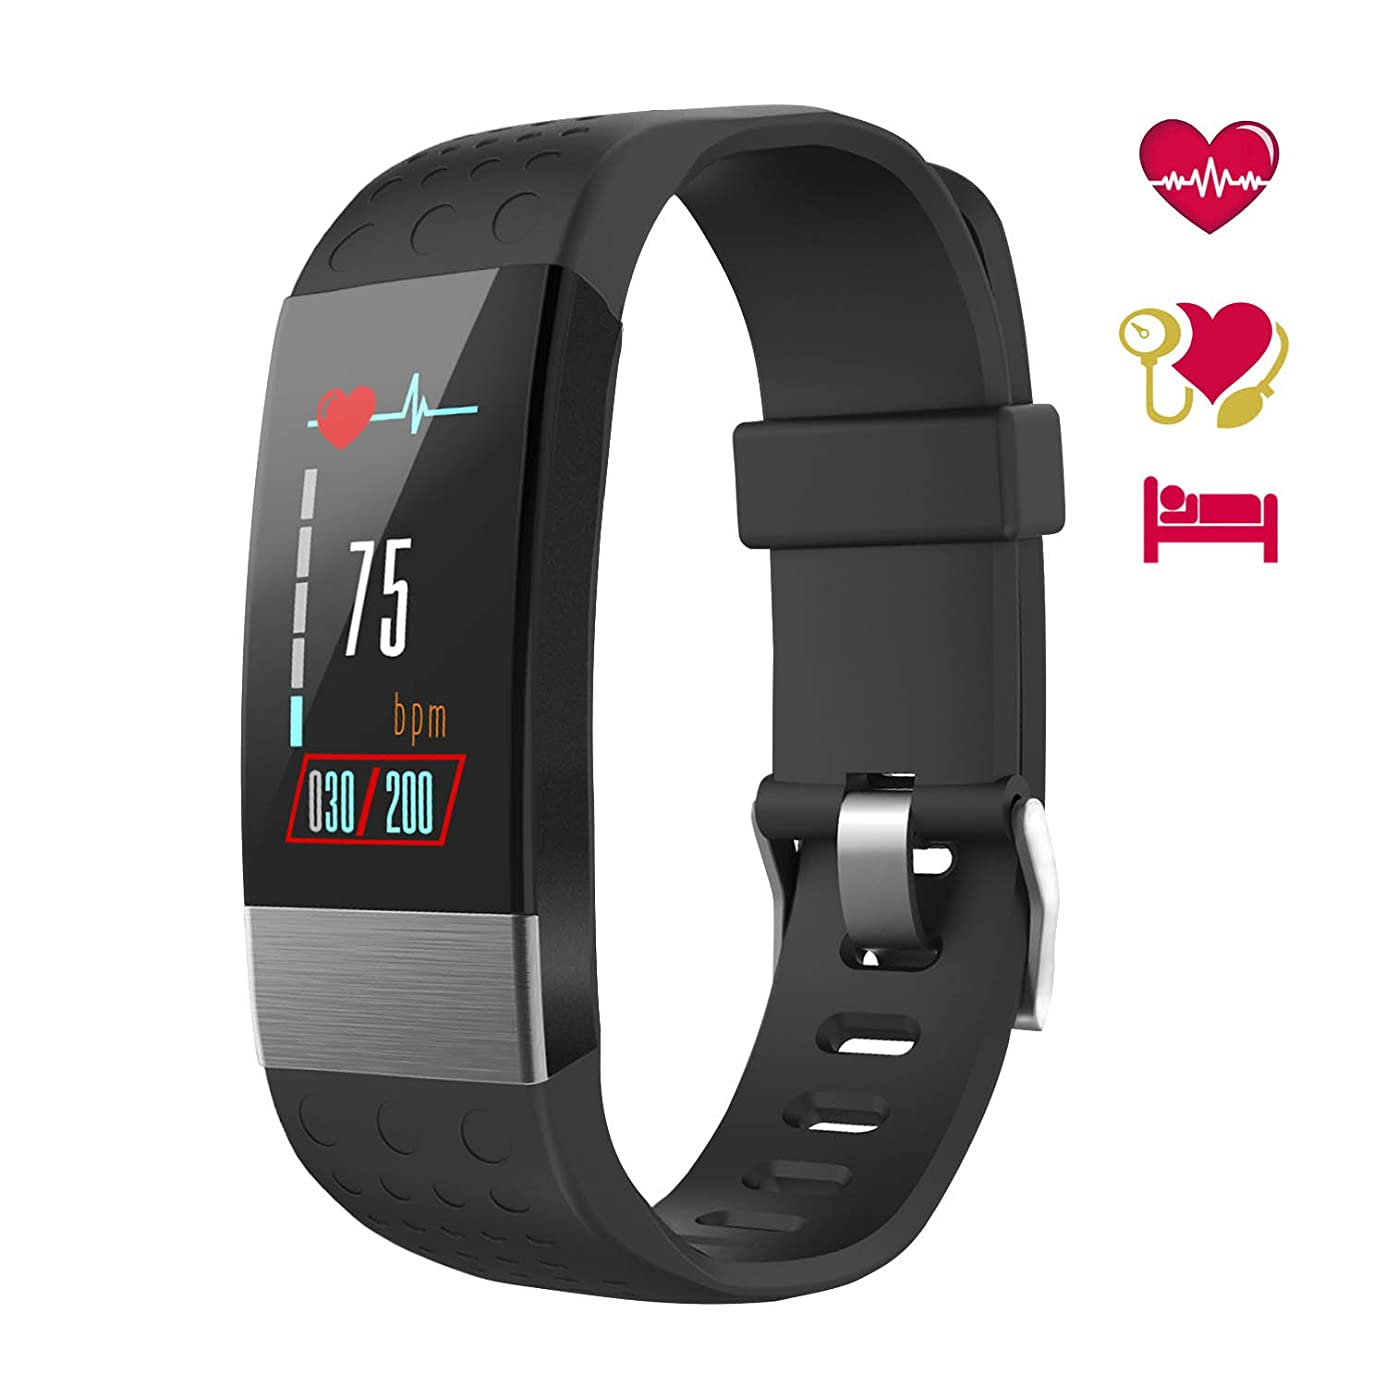 Smart Watch with Blood Pressure Monitor, Fitness Tracker Watch IP67 Waterproof Heart Rate Monitor Activity Tracker Calorie Counter Pedometer Sleep Monitor Kids Men Women Black